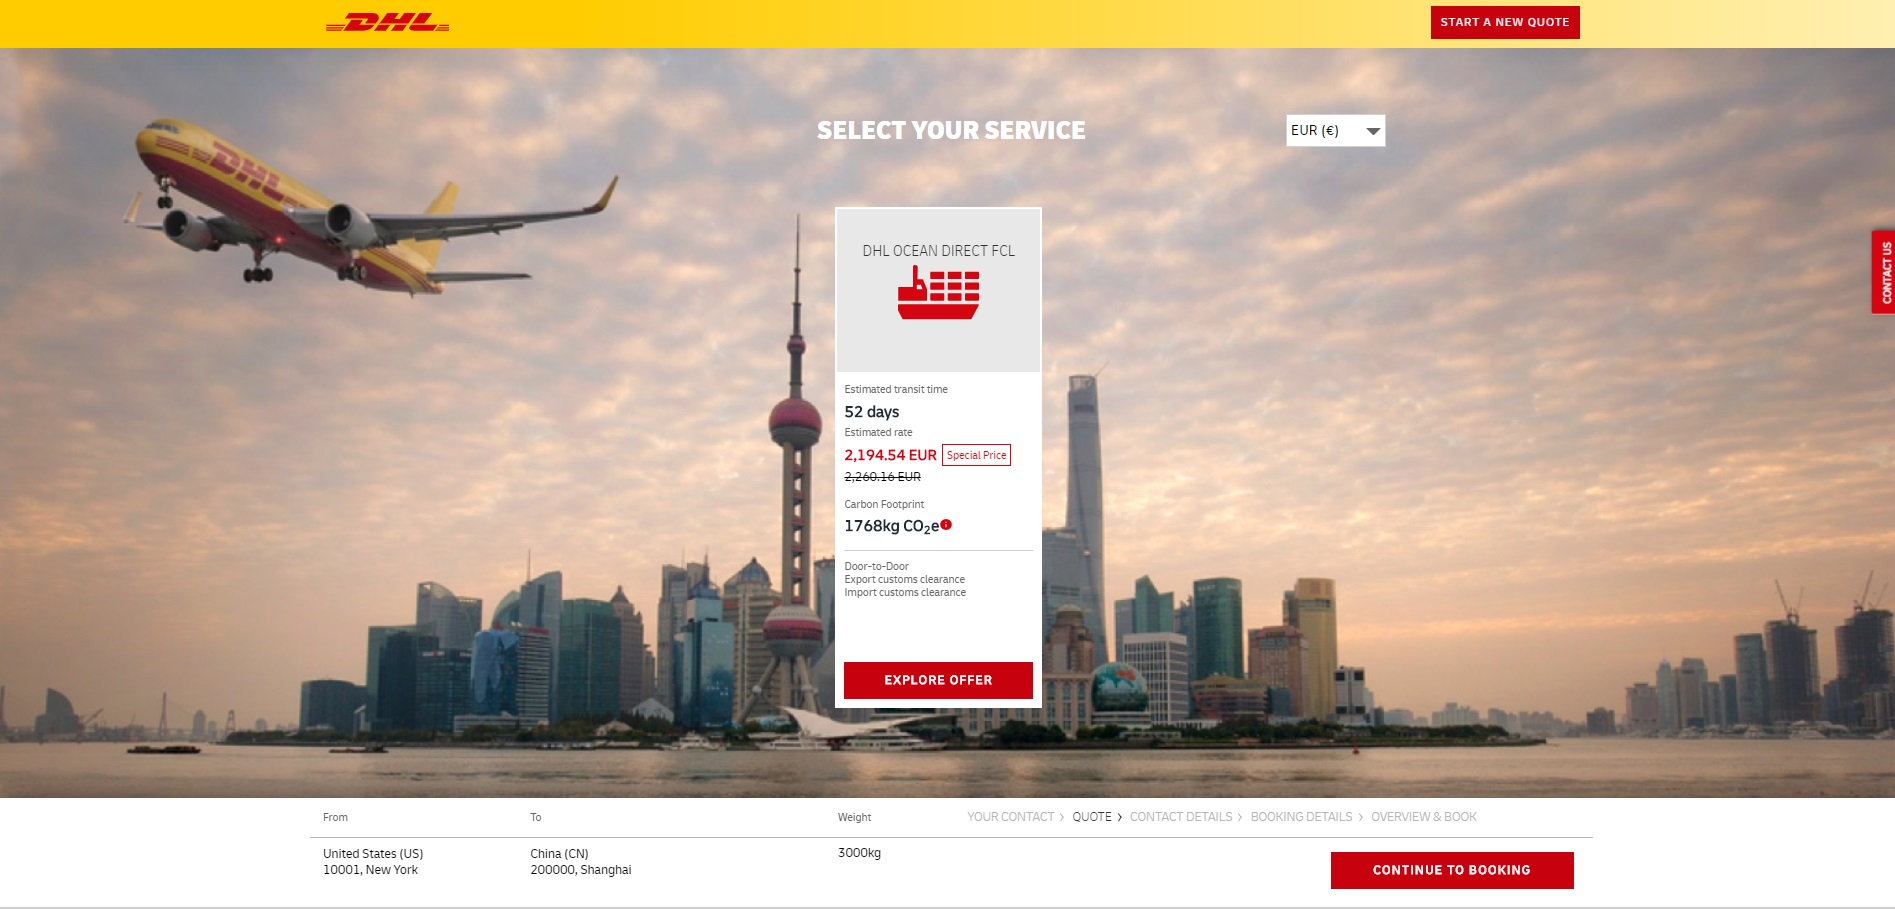 DHL further expands online booking service for ocean transports - Brand Spur